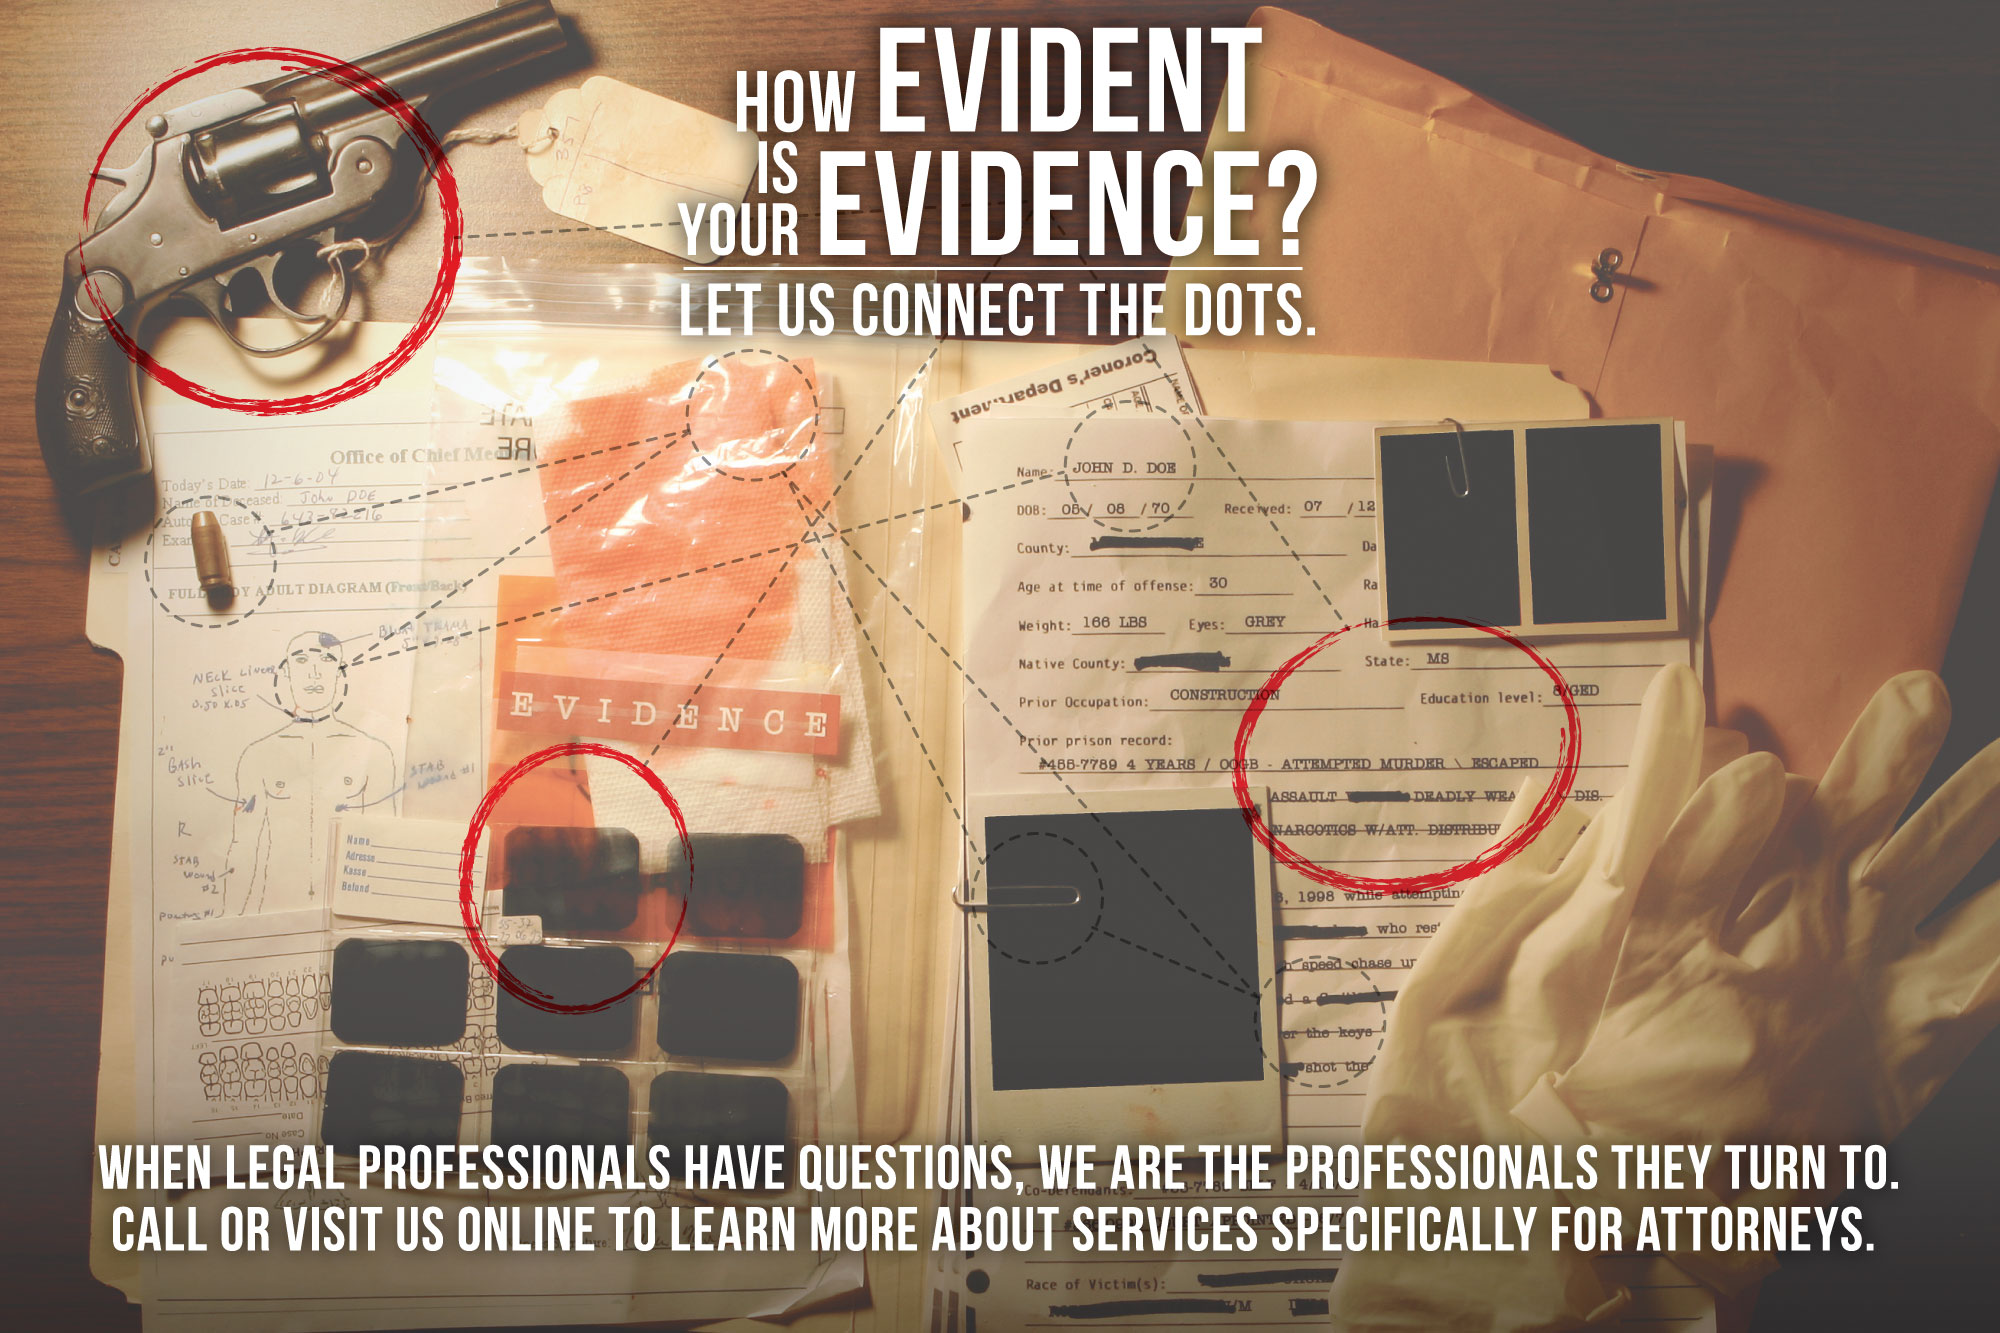 How Evident is your Evidence?